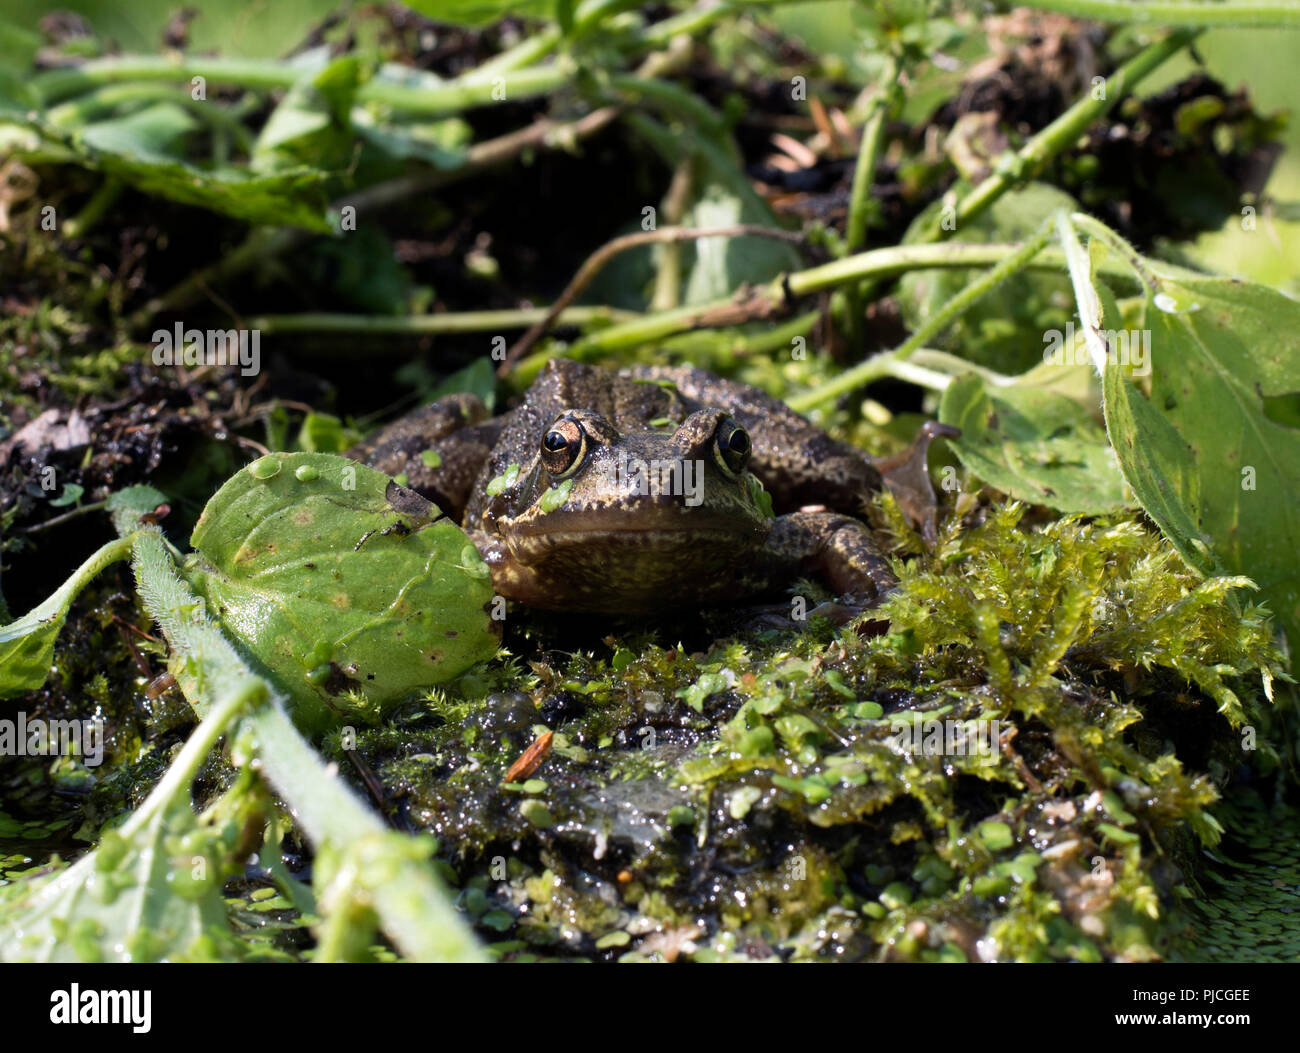 Eye level face on portrait of European common frog, Rana temporaria, sitting on rock surrounded by water plants. - Stock Image